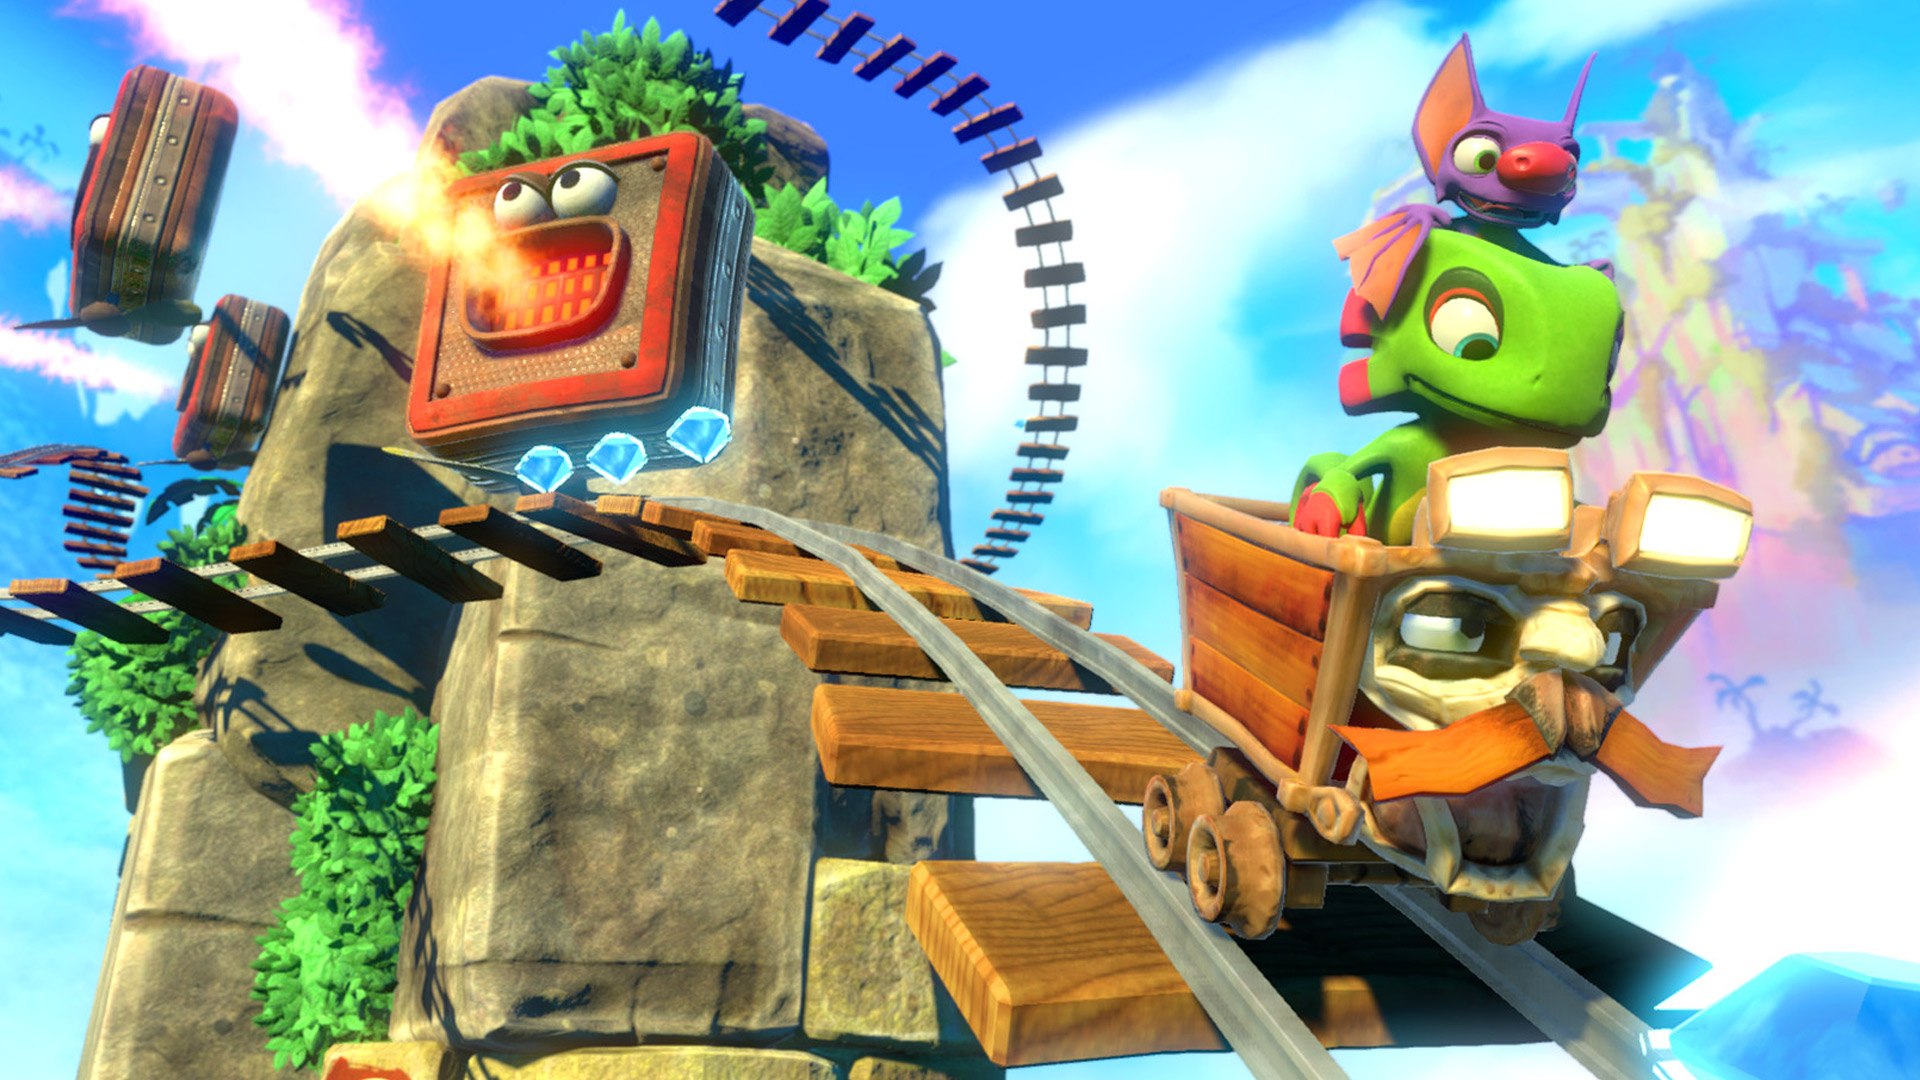 Yooka-Laylee: Nostalgia for the Nintendo Nineties